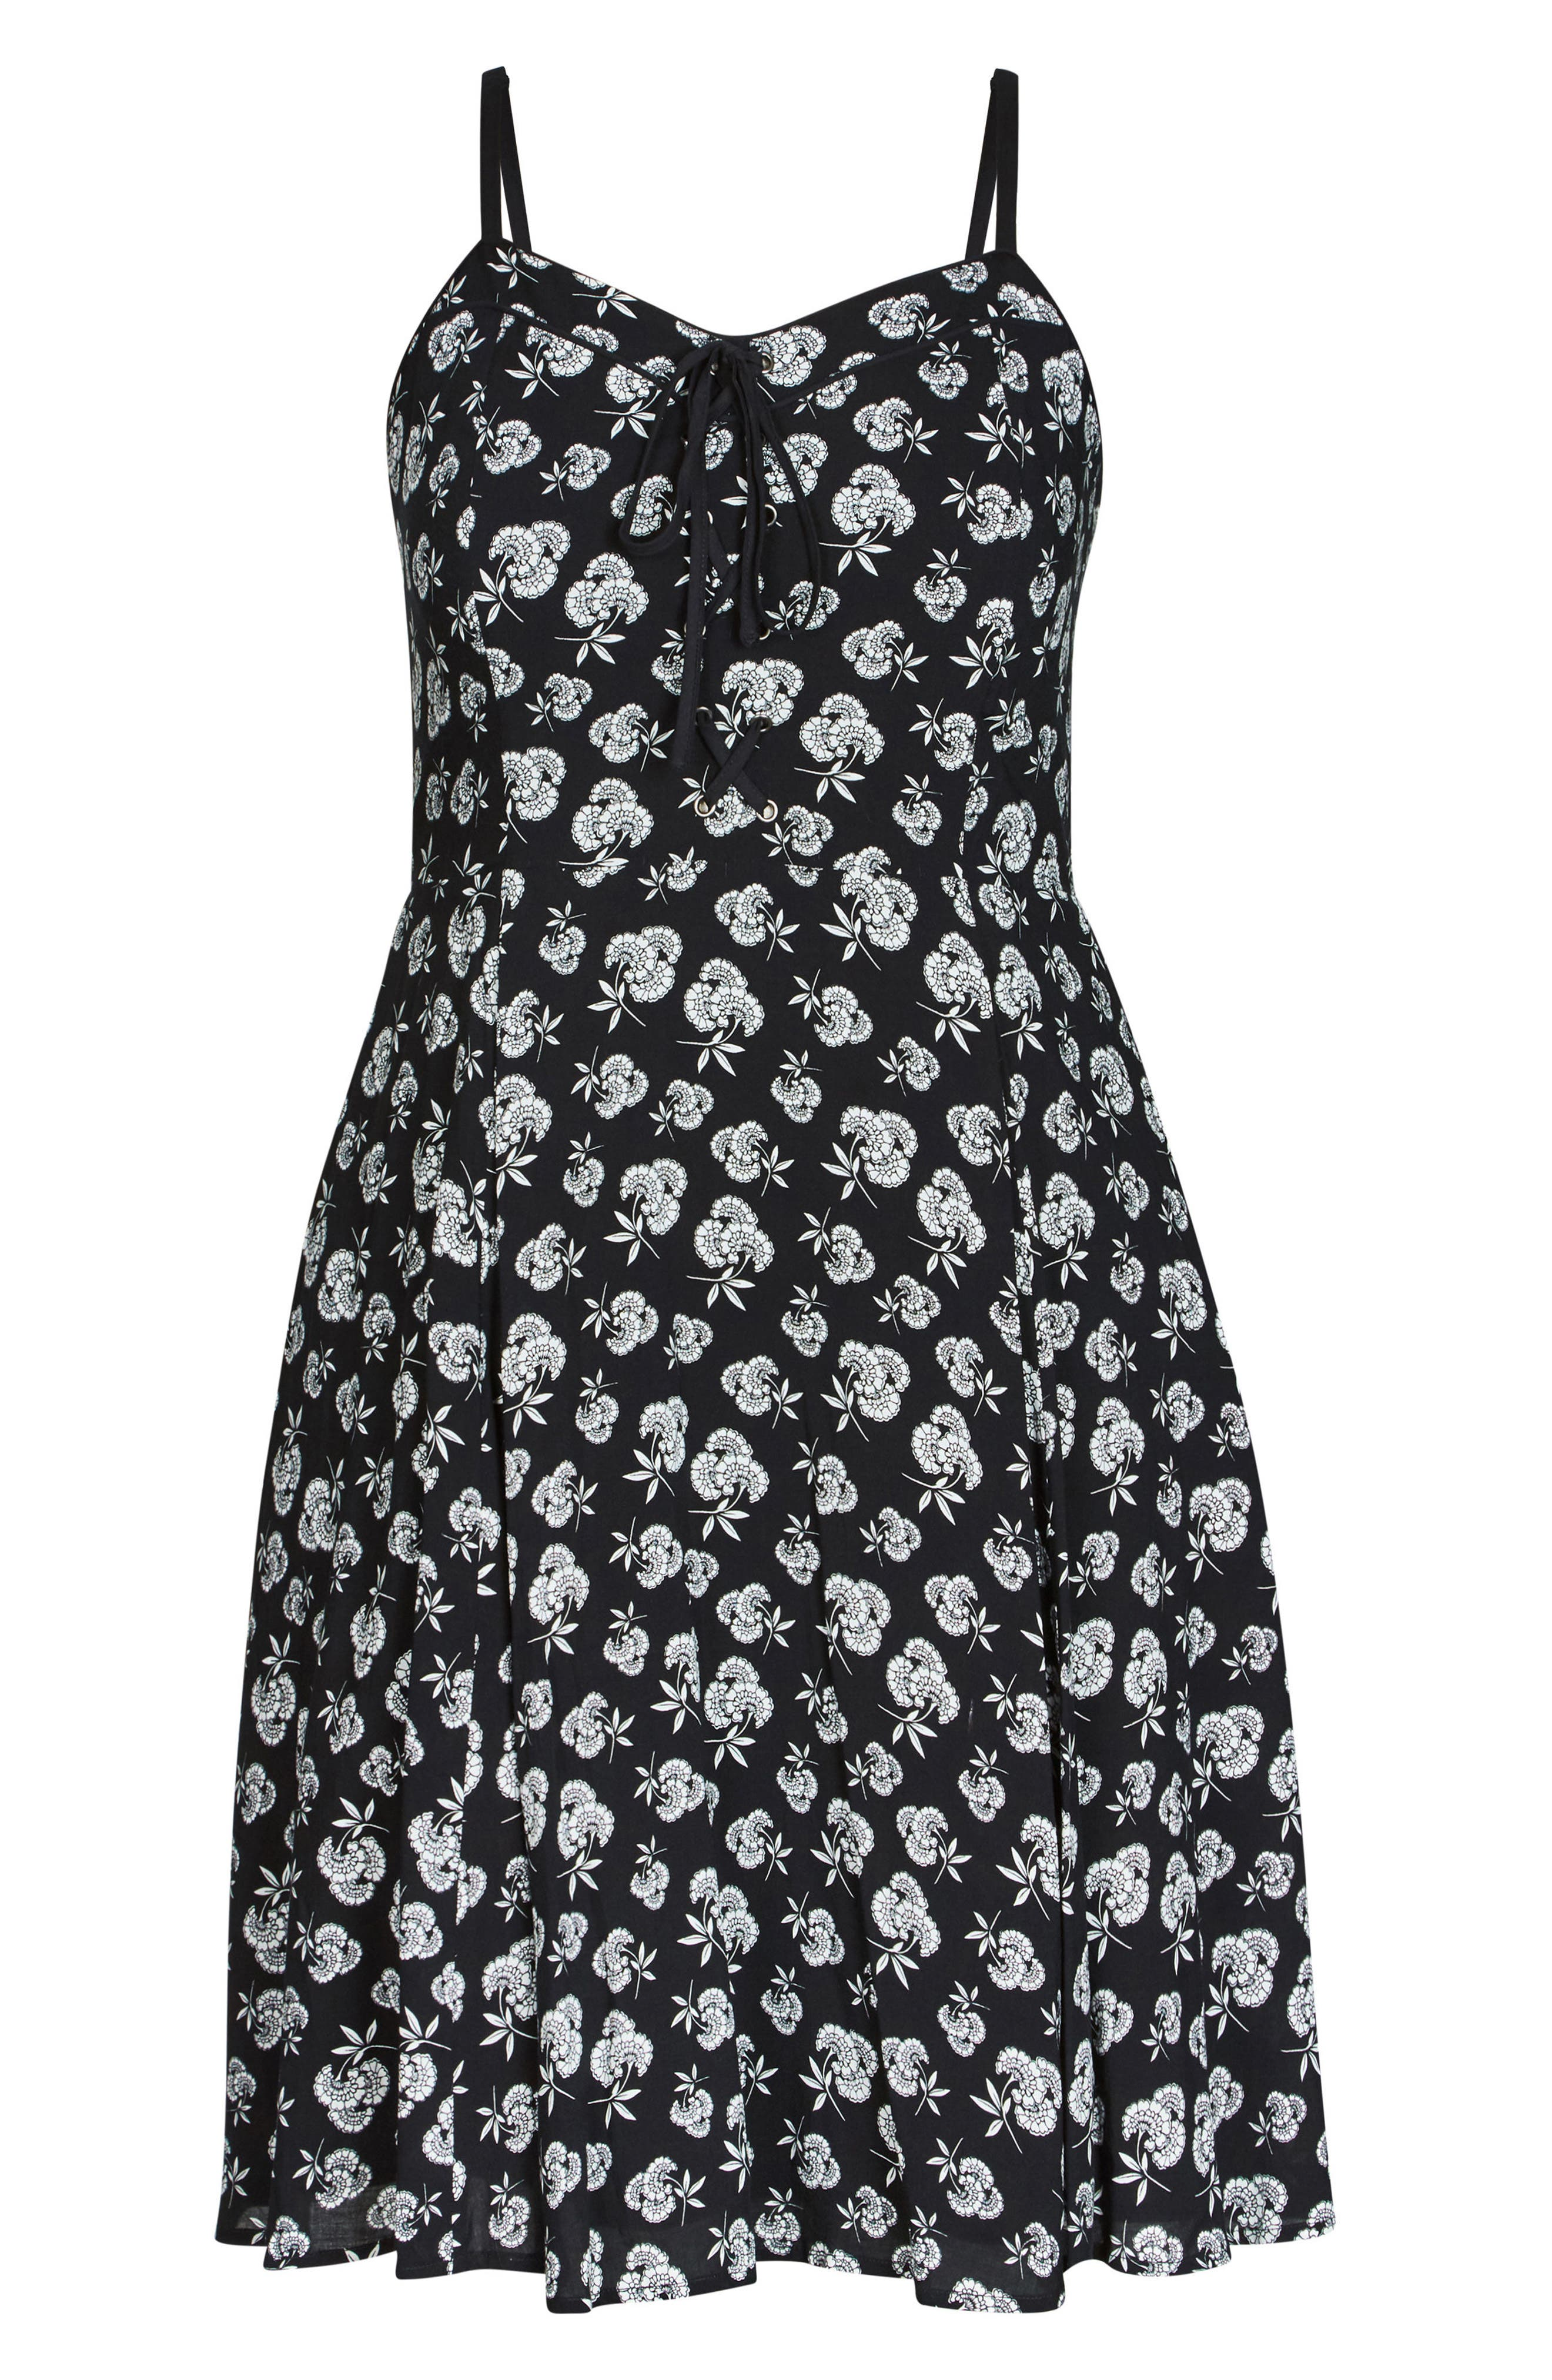 Deco Floral A-Line Dress,                             Alternate thumbnail 3, color,                             Deco Floral